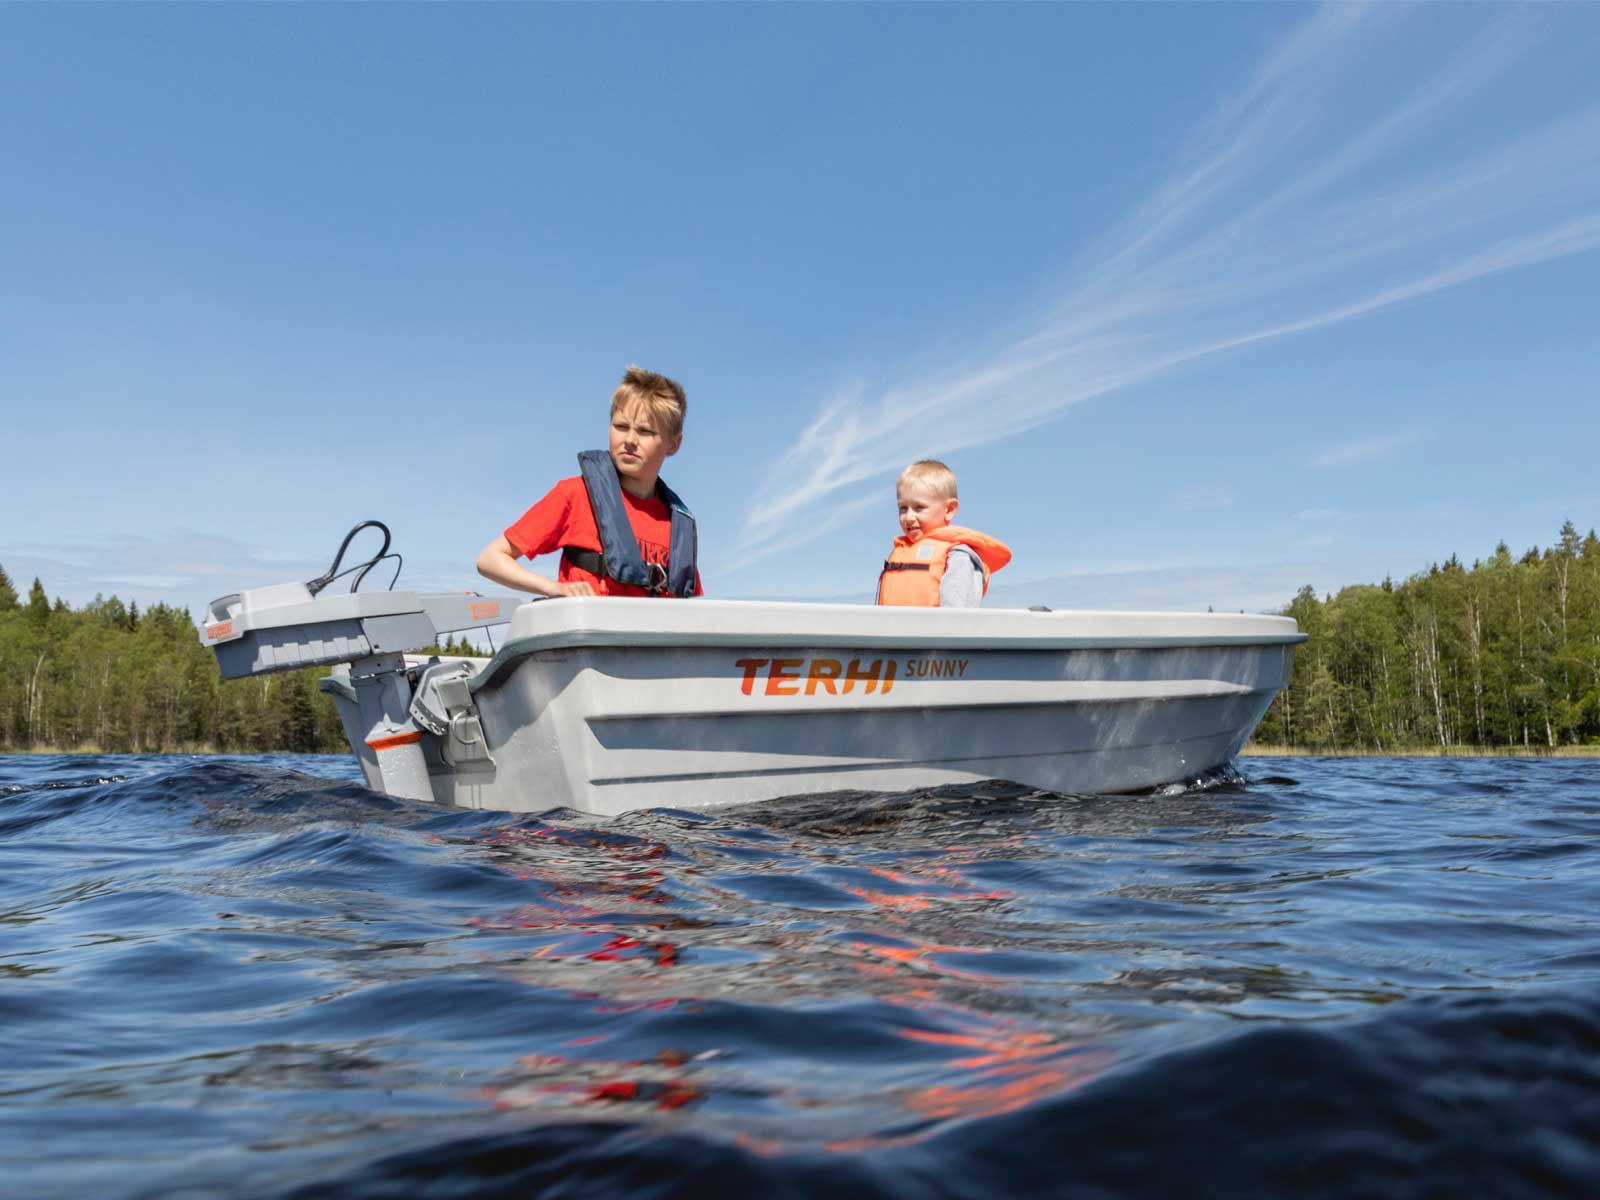 Terhi 310 Sunny | Boat Solutions, Utting am Ammersee